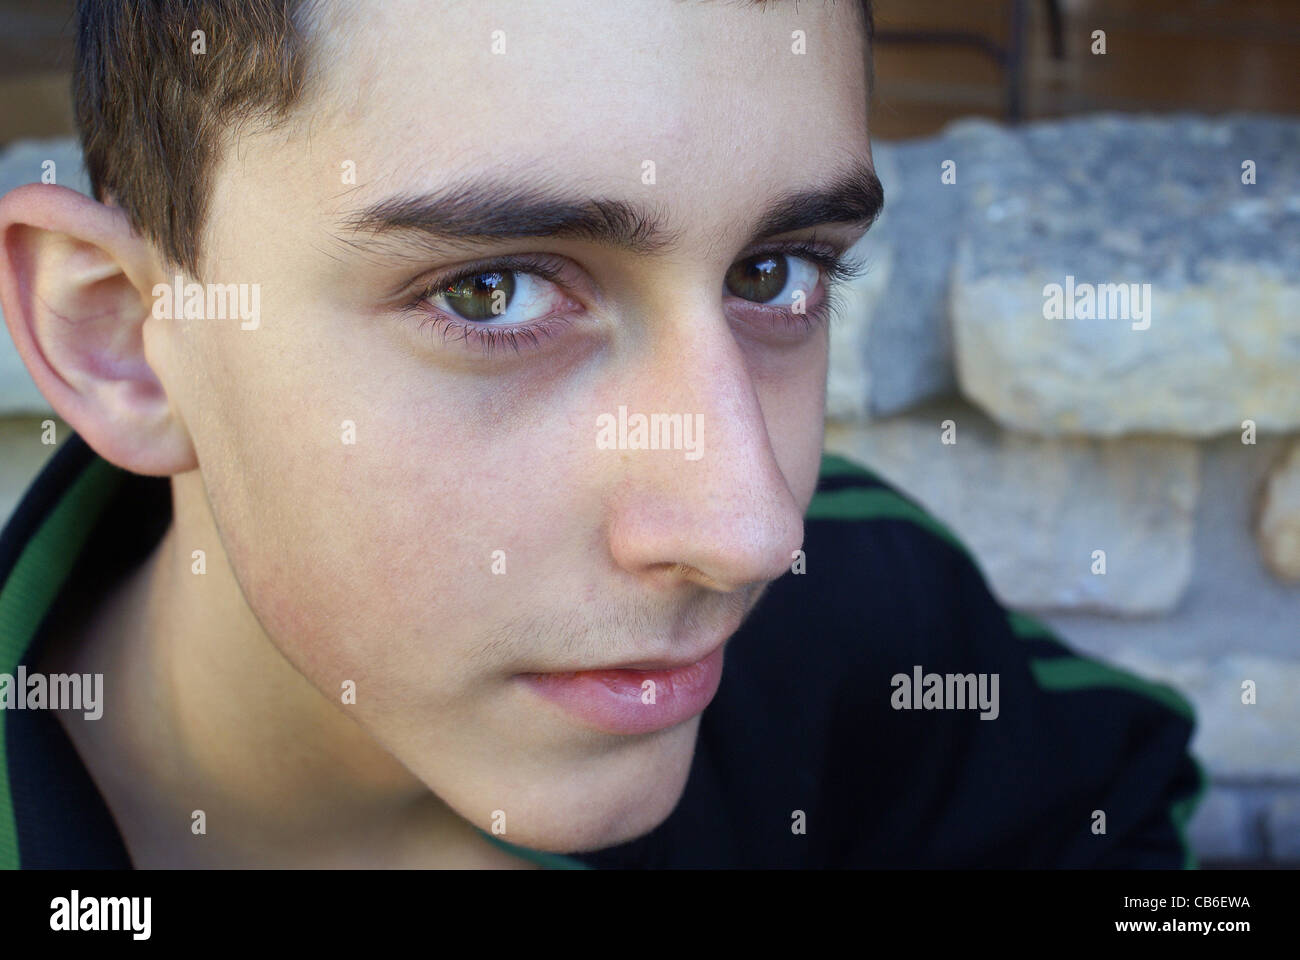 Face of the future in a young teenager. - Stock Image